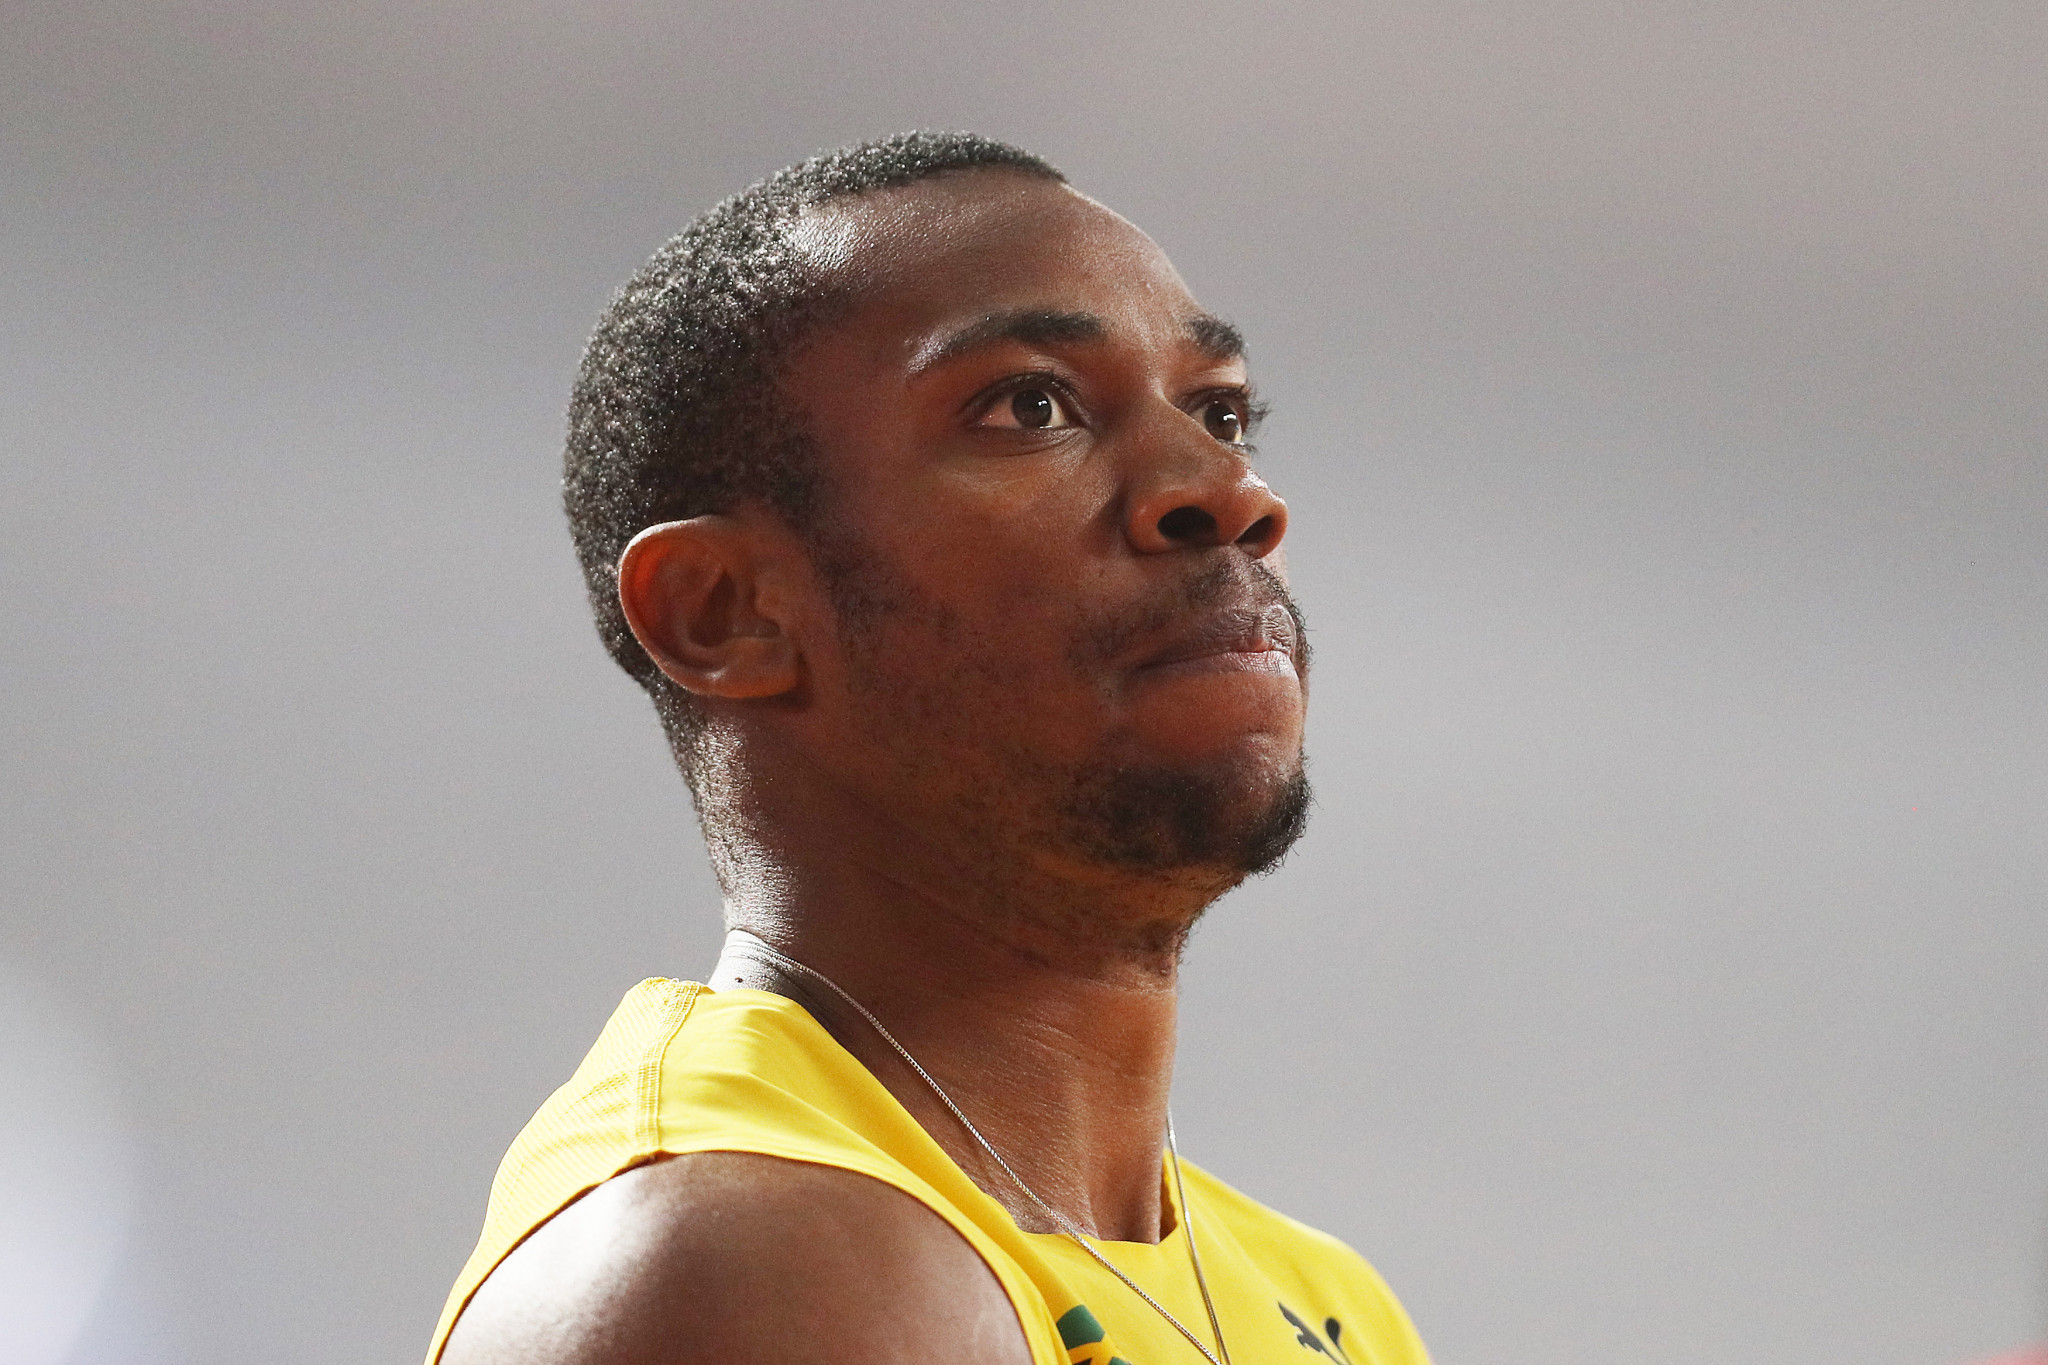 Jamaican sprinter Blake says he would rather miss Tokyo 2020 than take COVID-19 vaccine